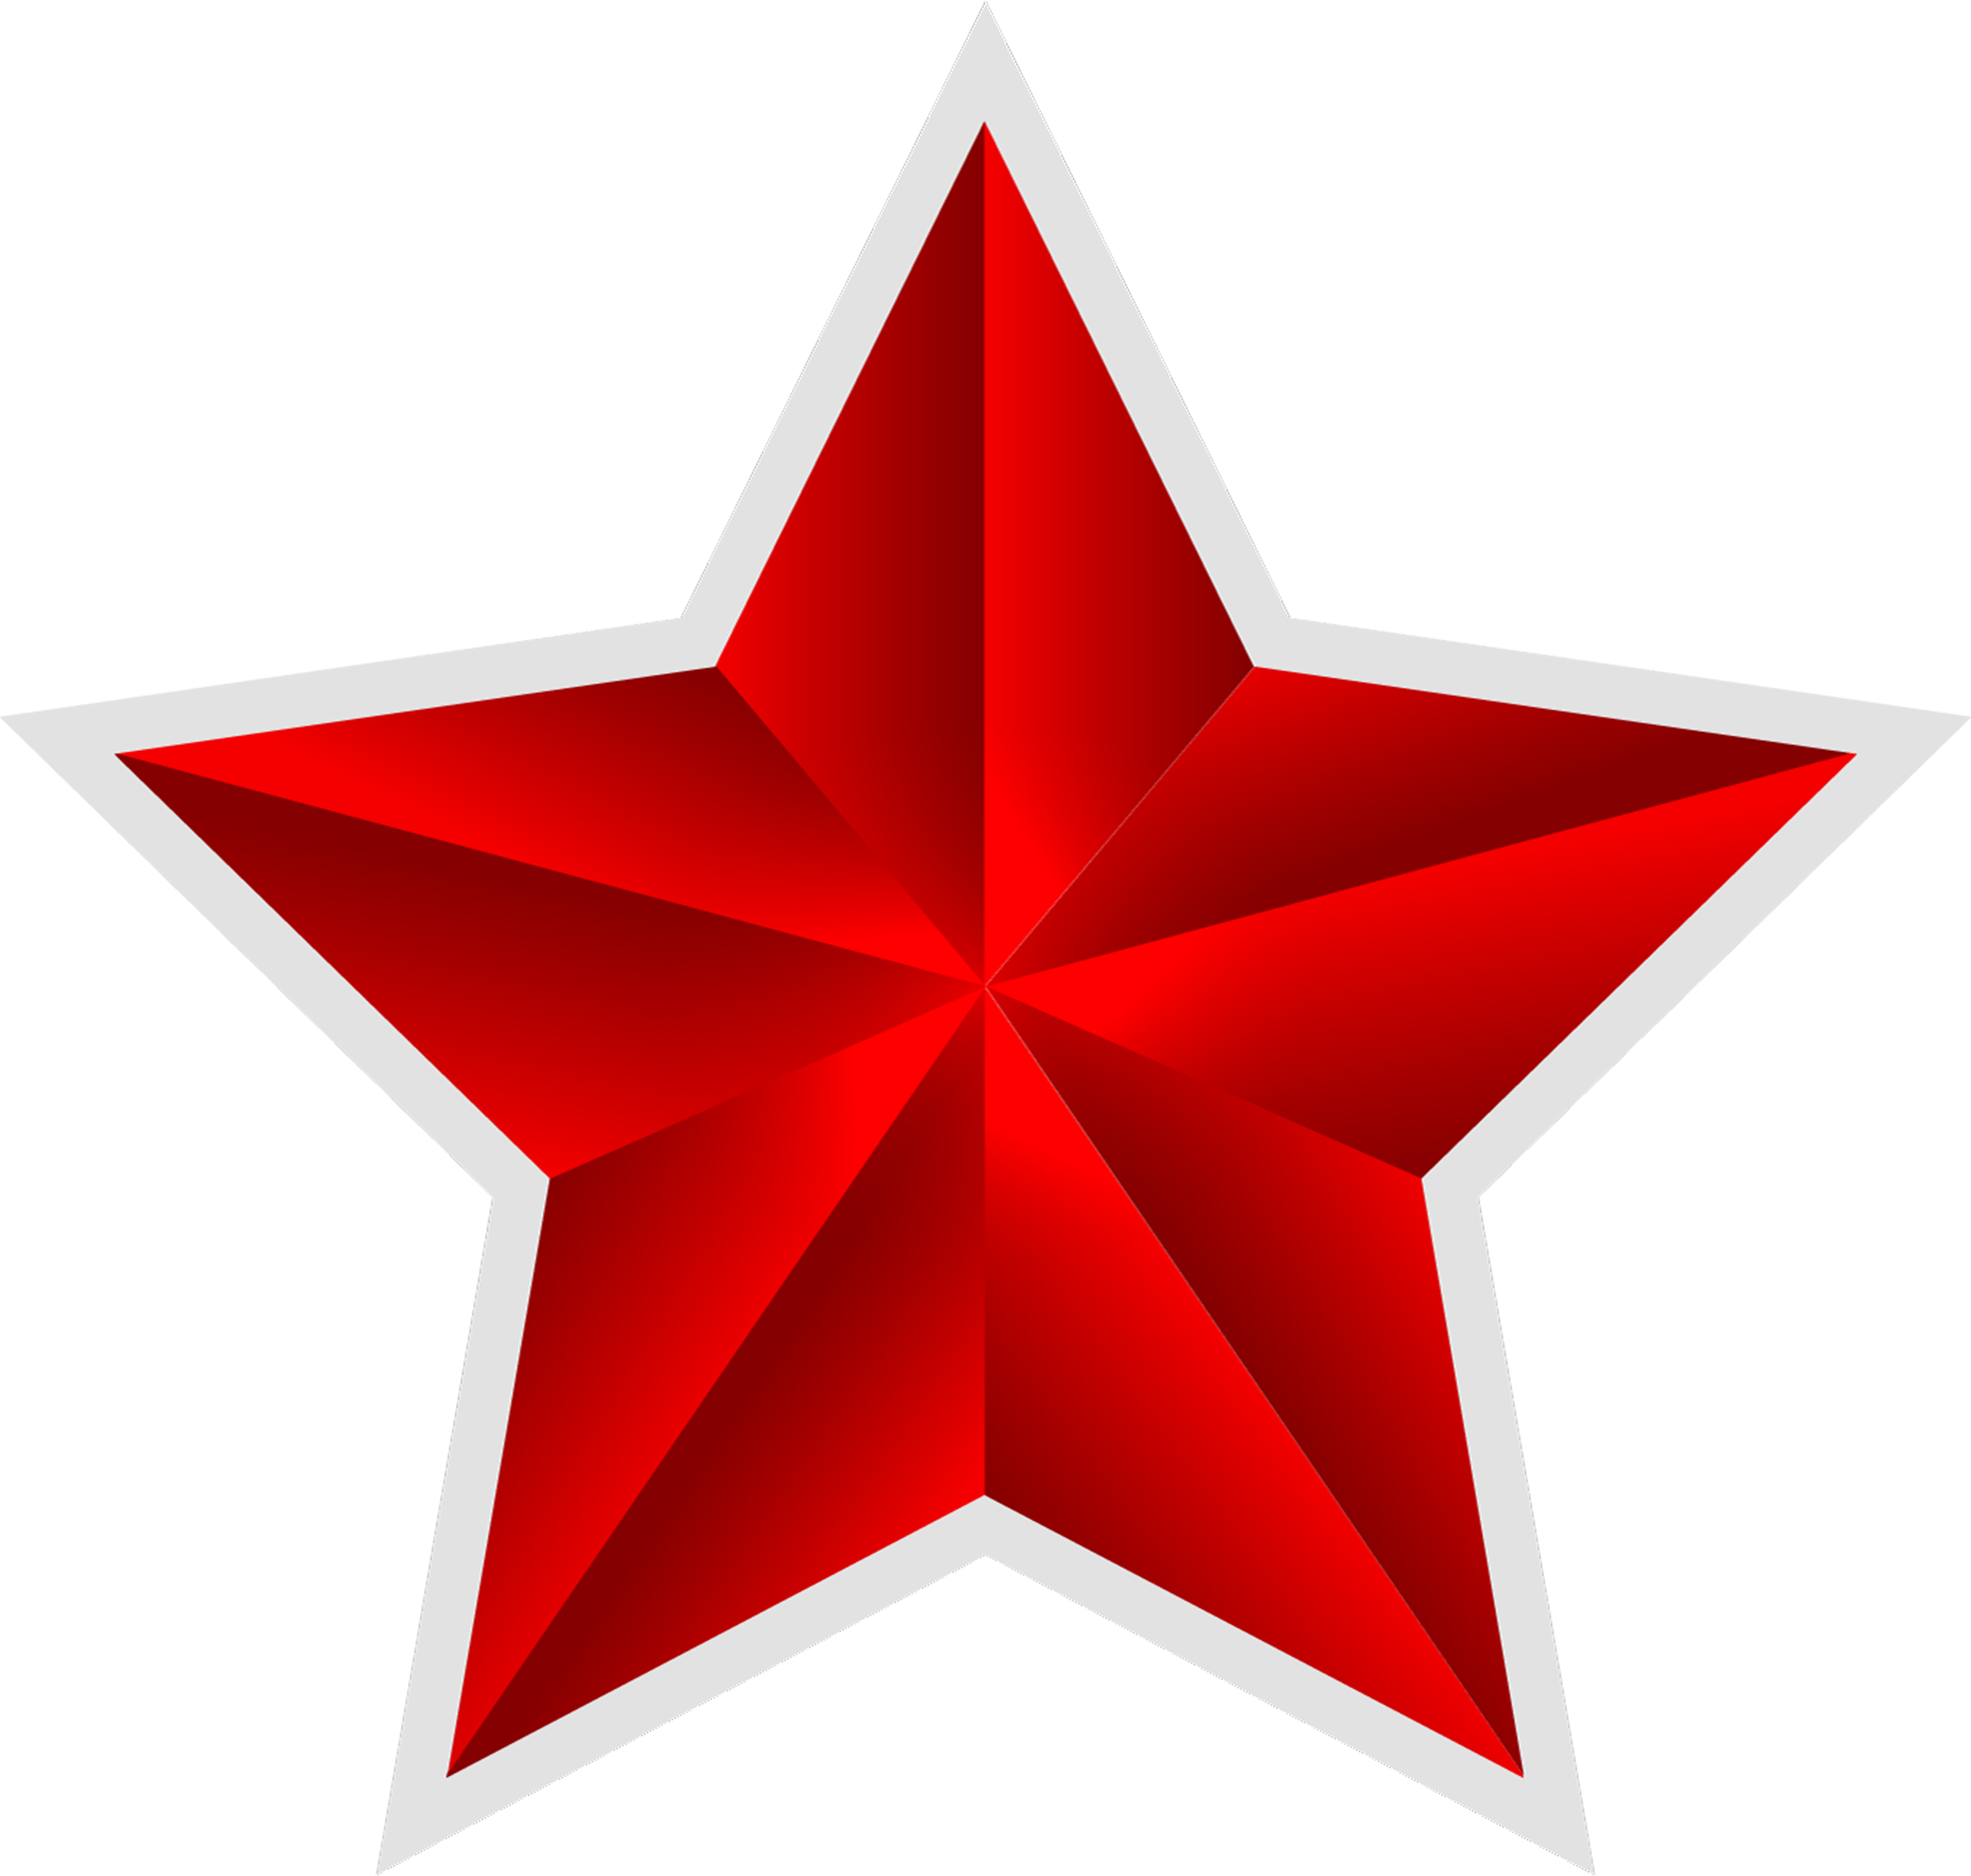 Clipart red star picture transparent Red star PNG picture transparent